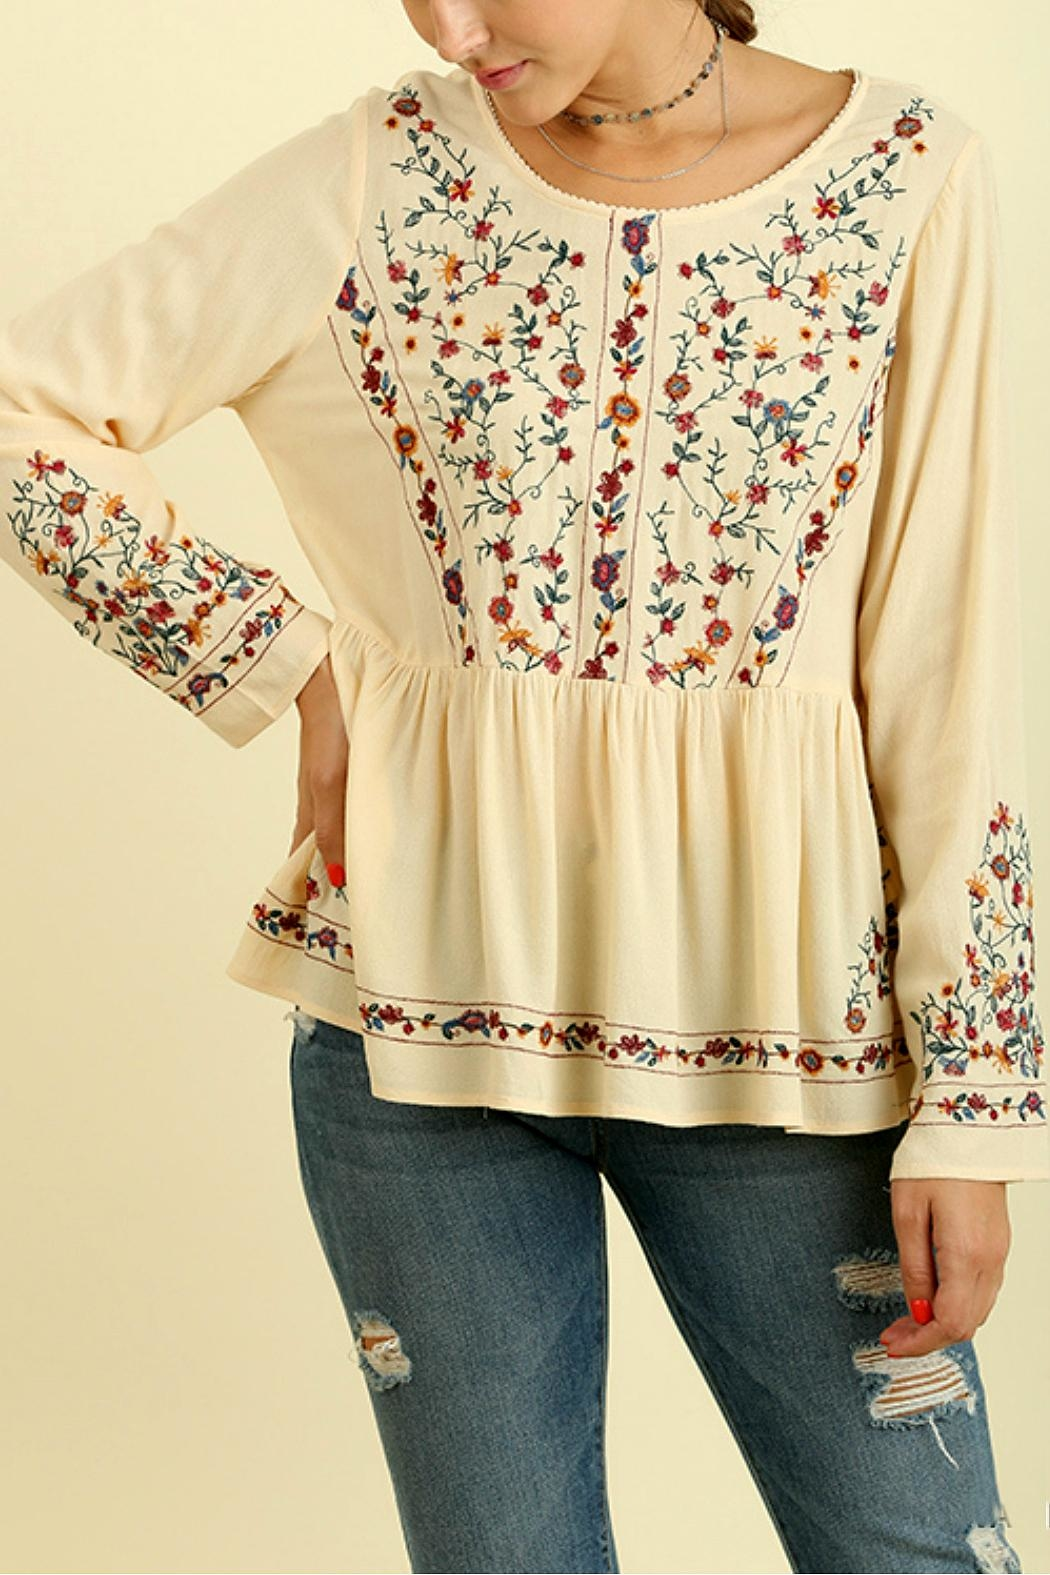 Umgee USA Floral Embroidered Top - Main Image